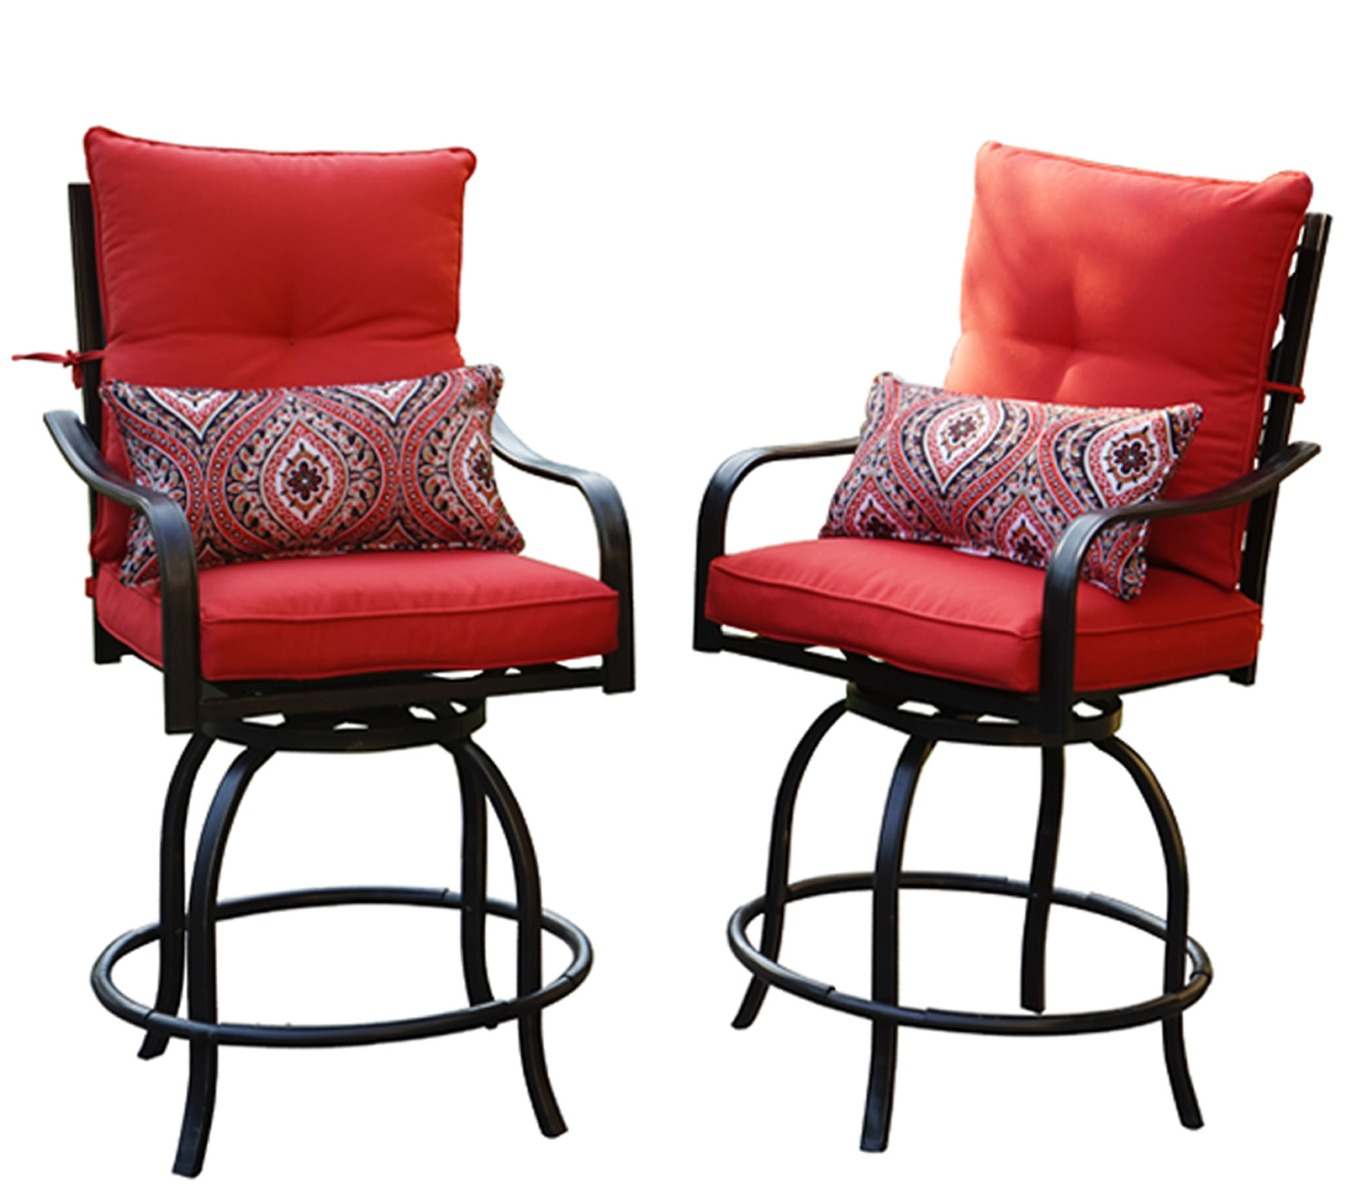 Kozyard Corona 360 Degree Swivel Two Bar Chairs (2 Patterned Pillows Included)